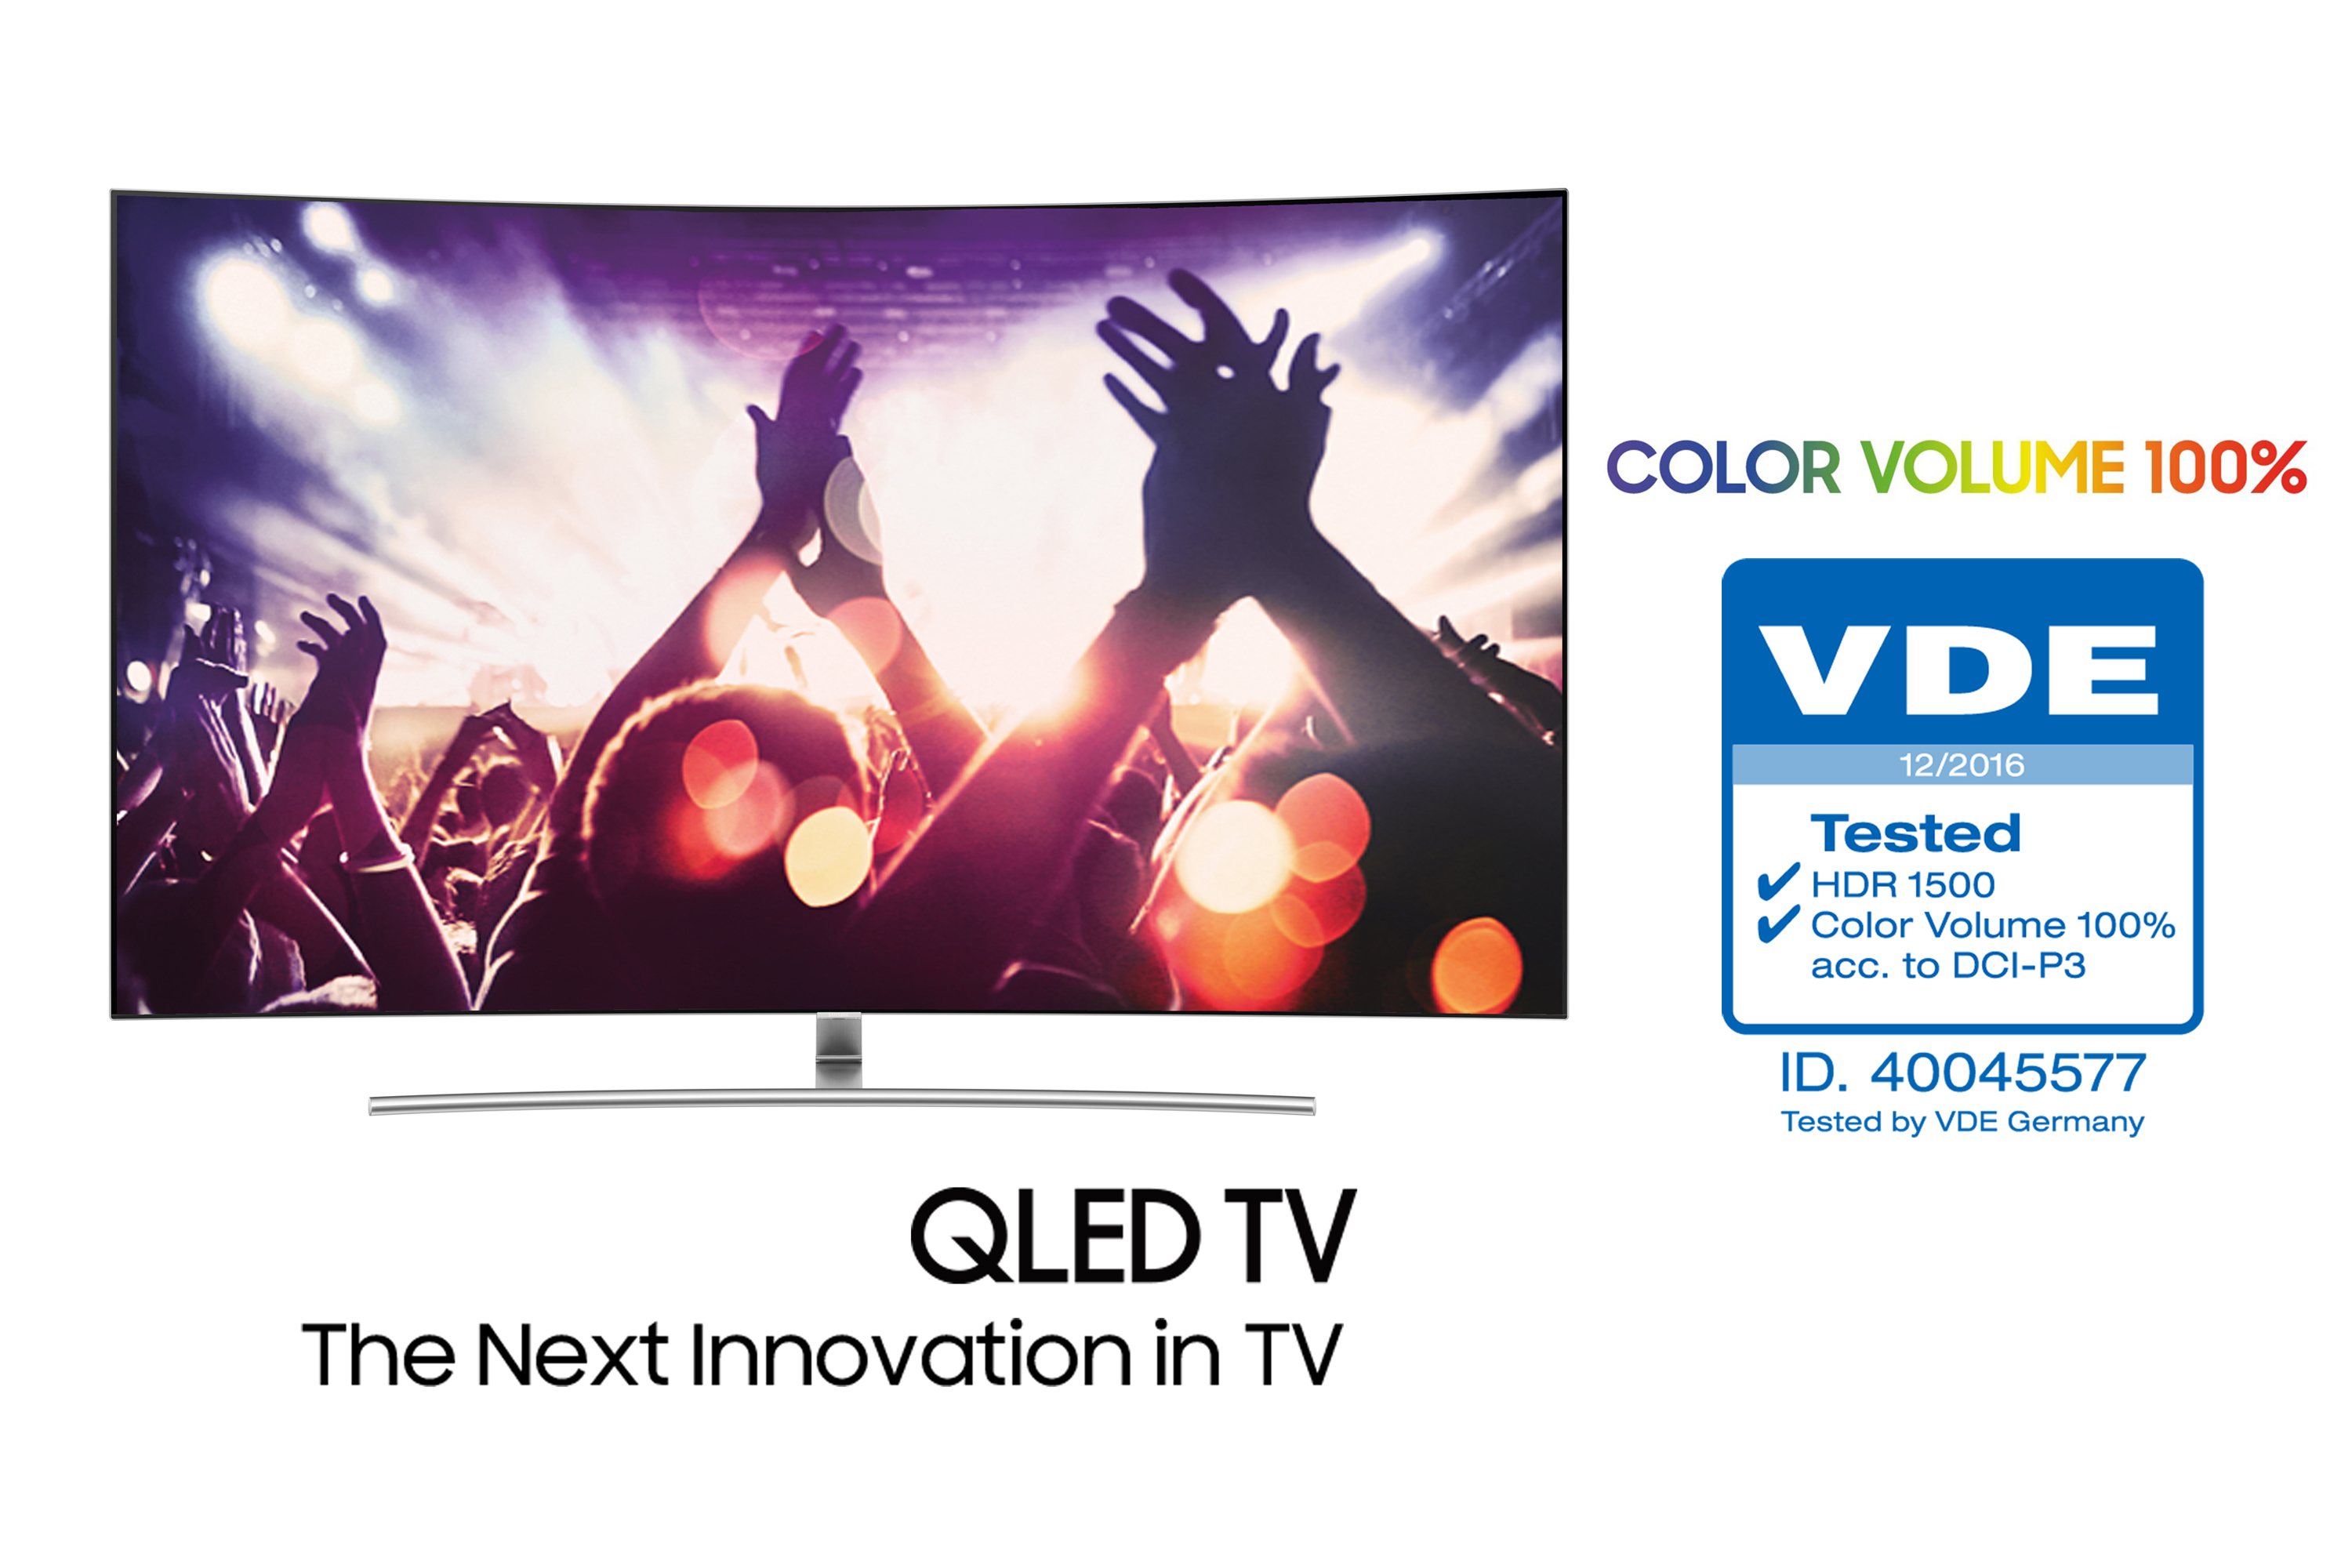 Samsung's New QLED TV Becomes the First '100 Percent Color